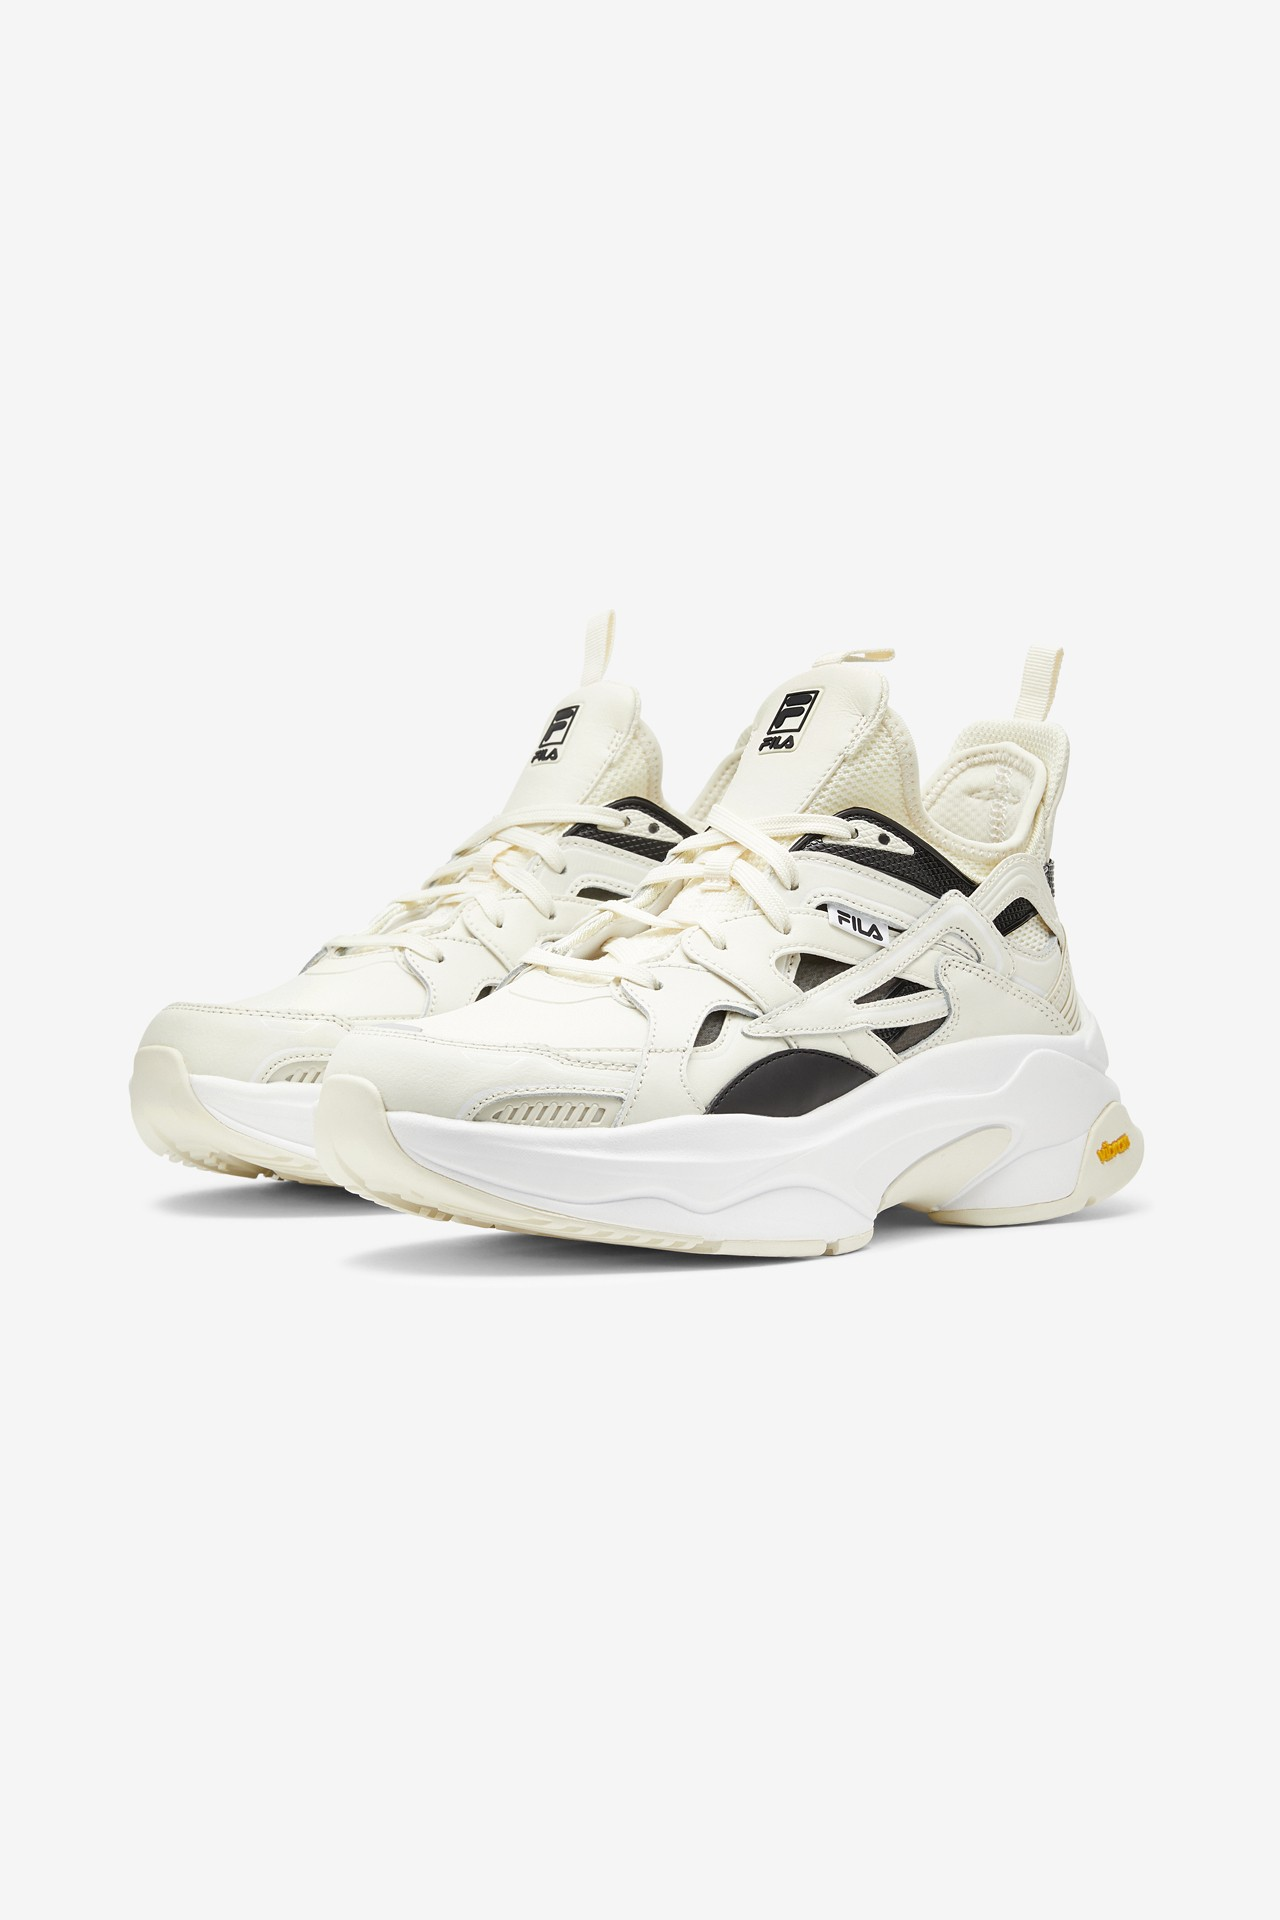 """black, white, metallic and silver colorways both men and women """"Whisper White"""" colorway, leather upper overlays, engineered knitted tongue and lining flexibility and easy slip-on access neoprene textile backing rubber molded heel tongue branding micro-grain nylon underlays"""